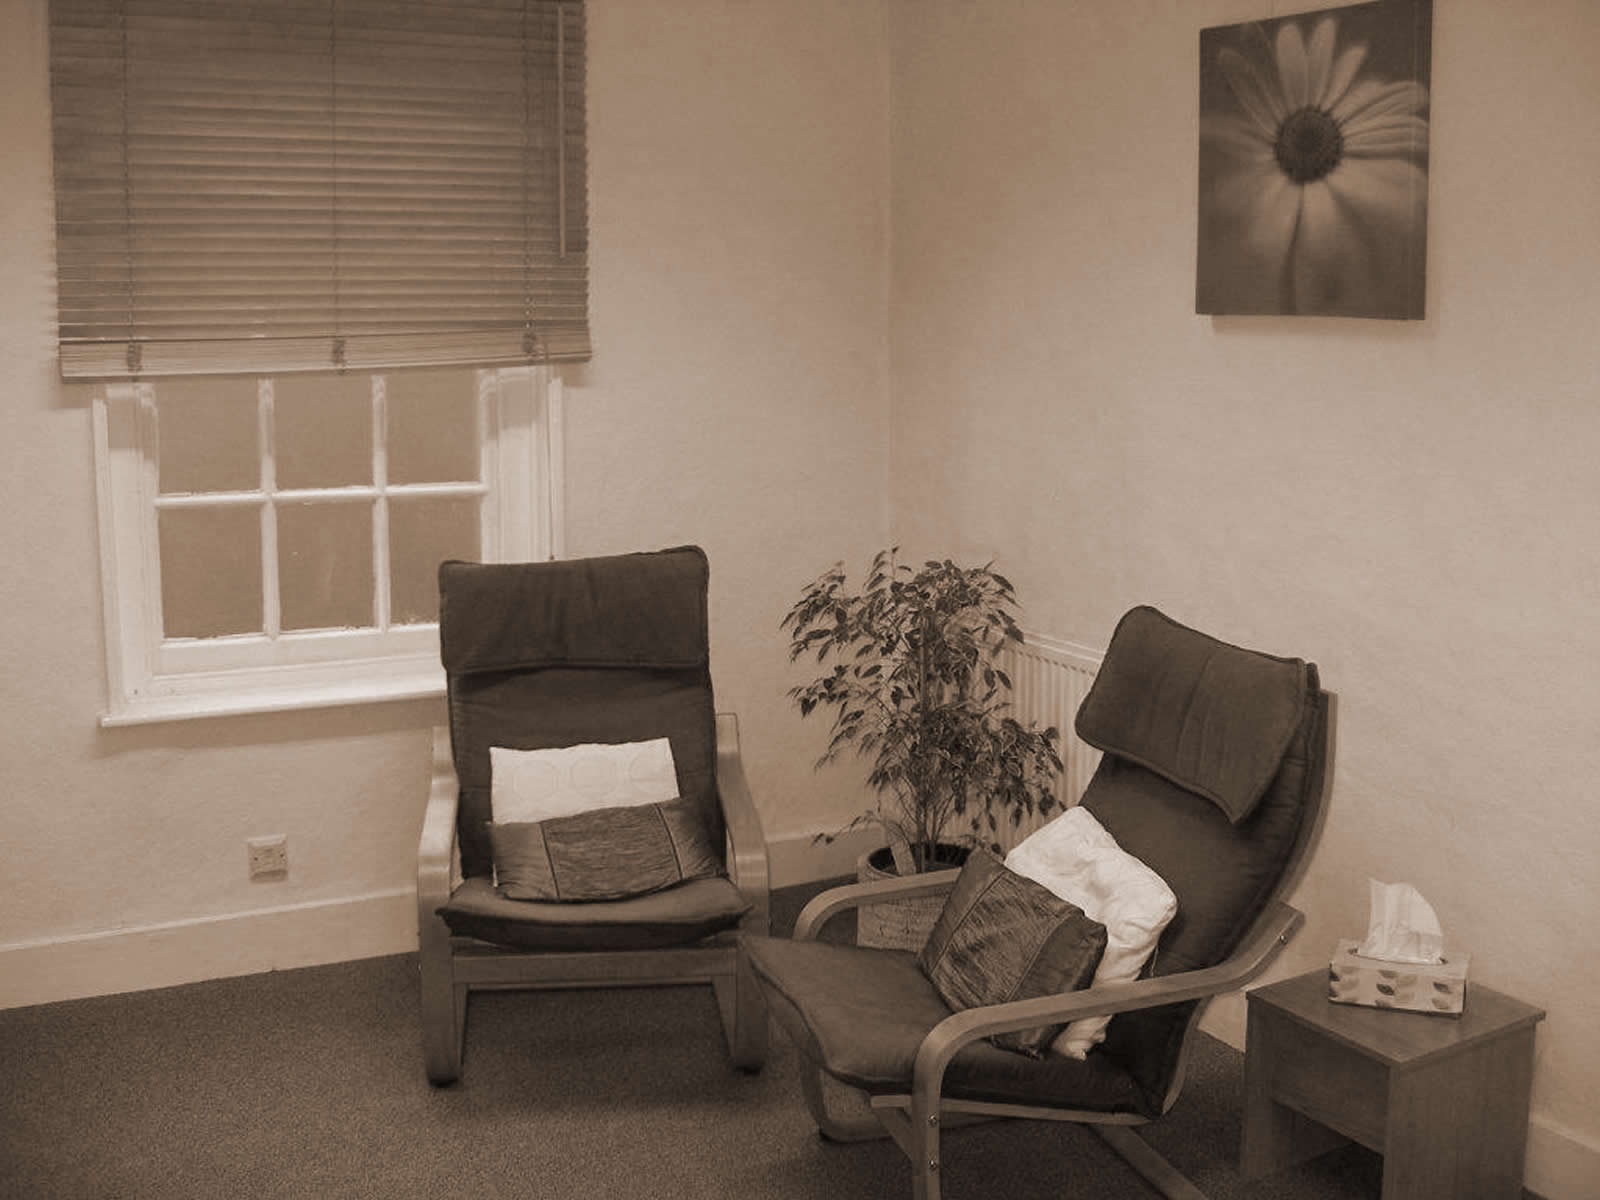 Internal view of the Berkshire Wellbeing Clinic